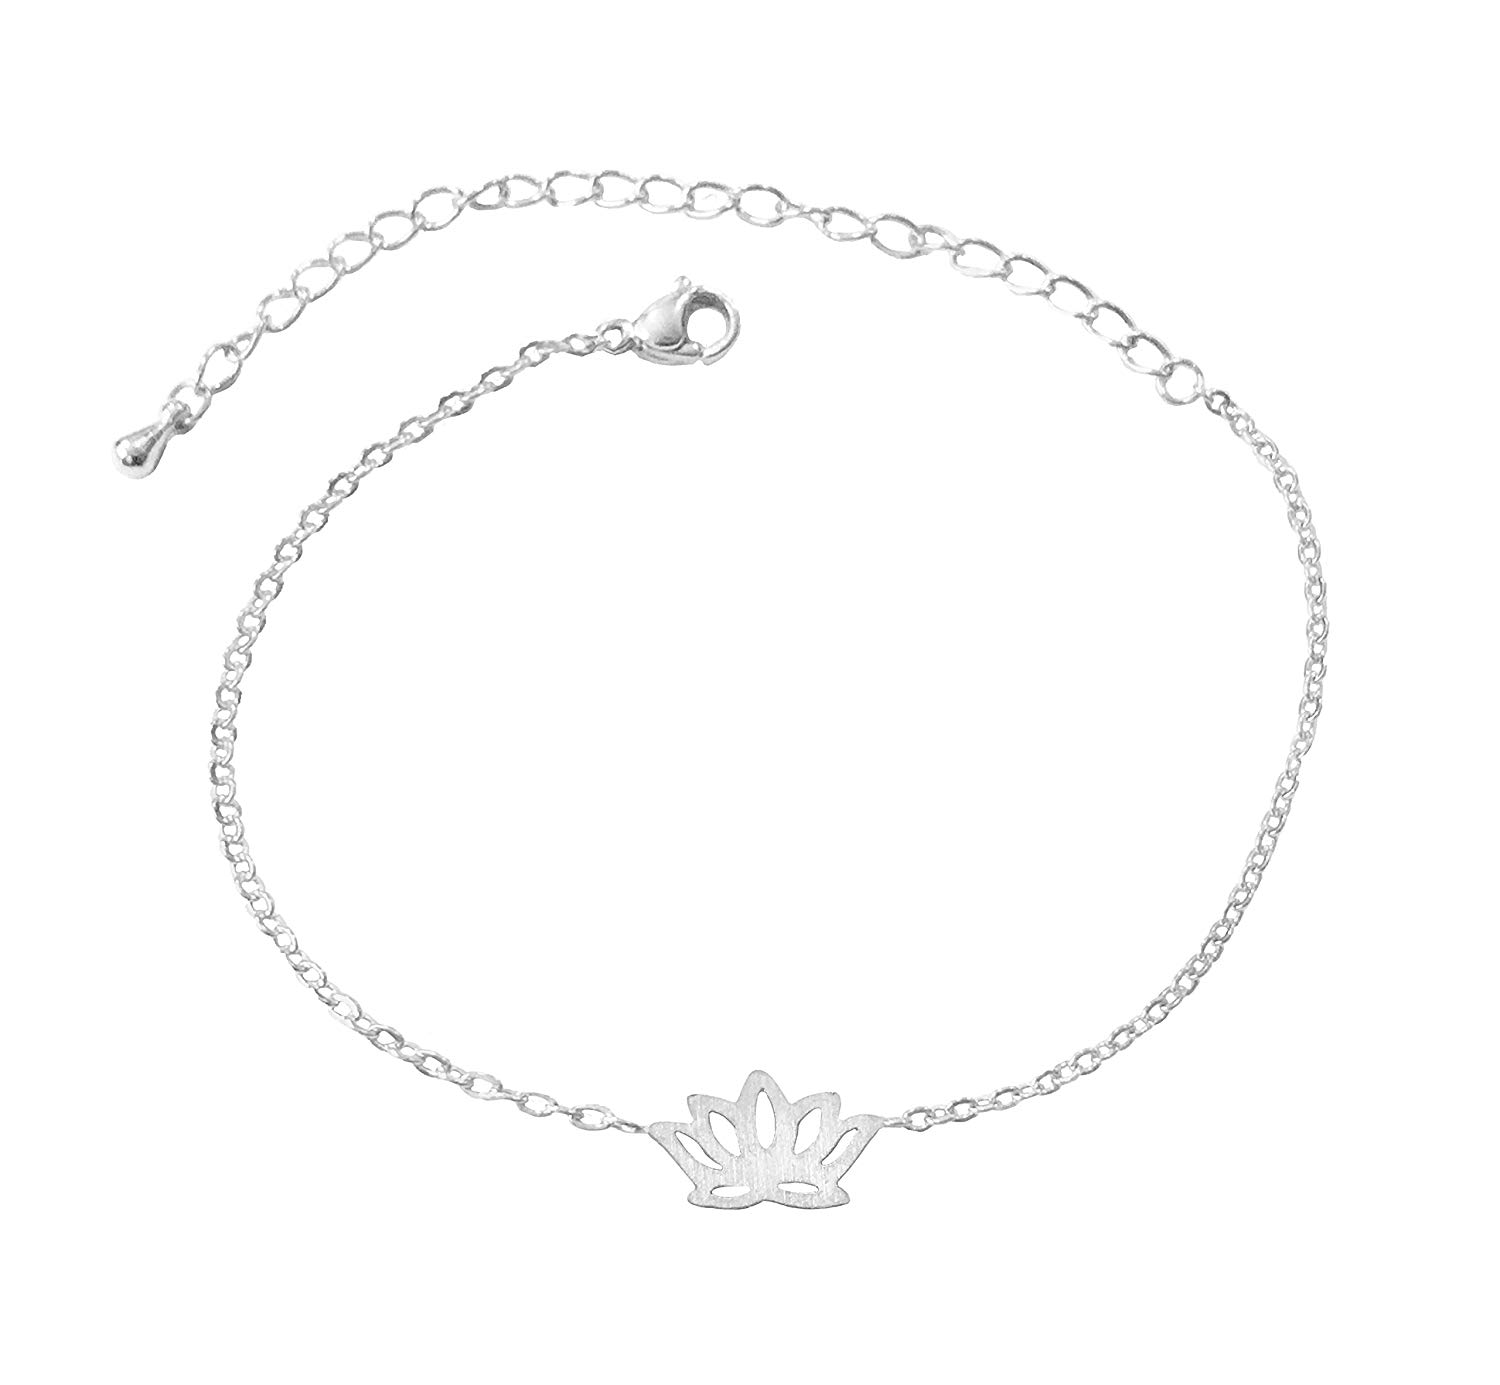 Cheap Lotus Flower Bomb Meaning Find Lotus Flower Bomb Meaning